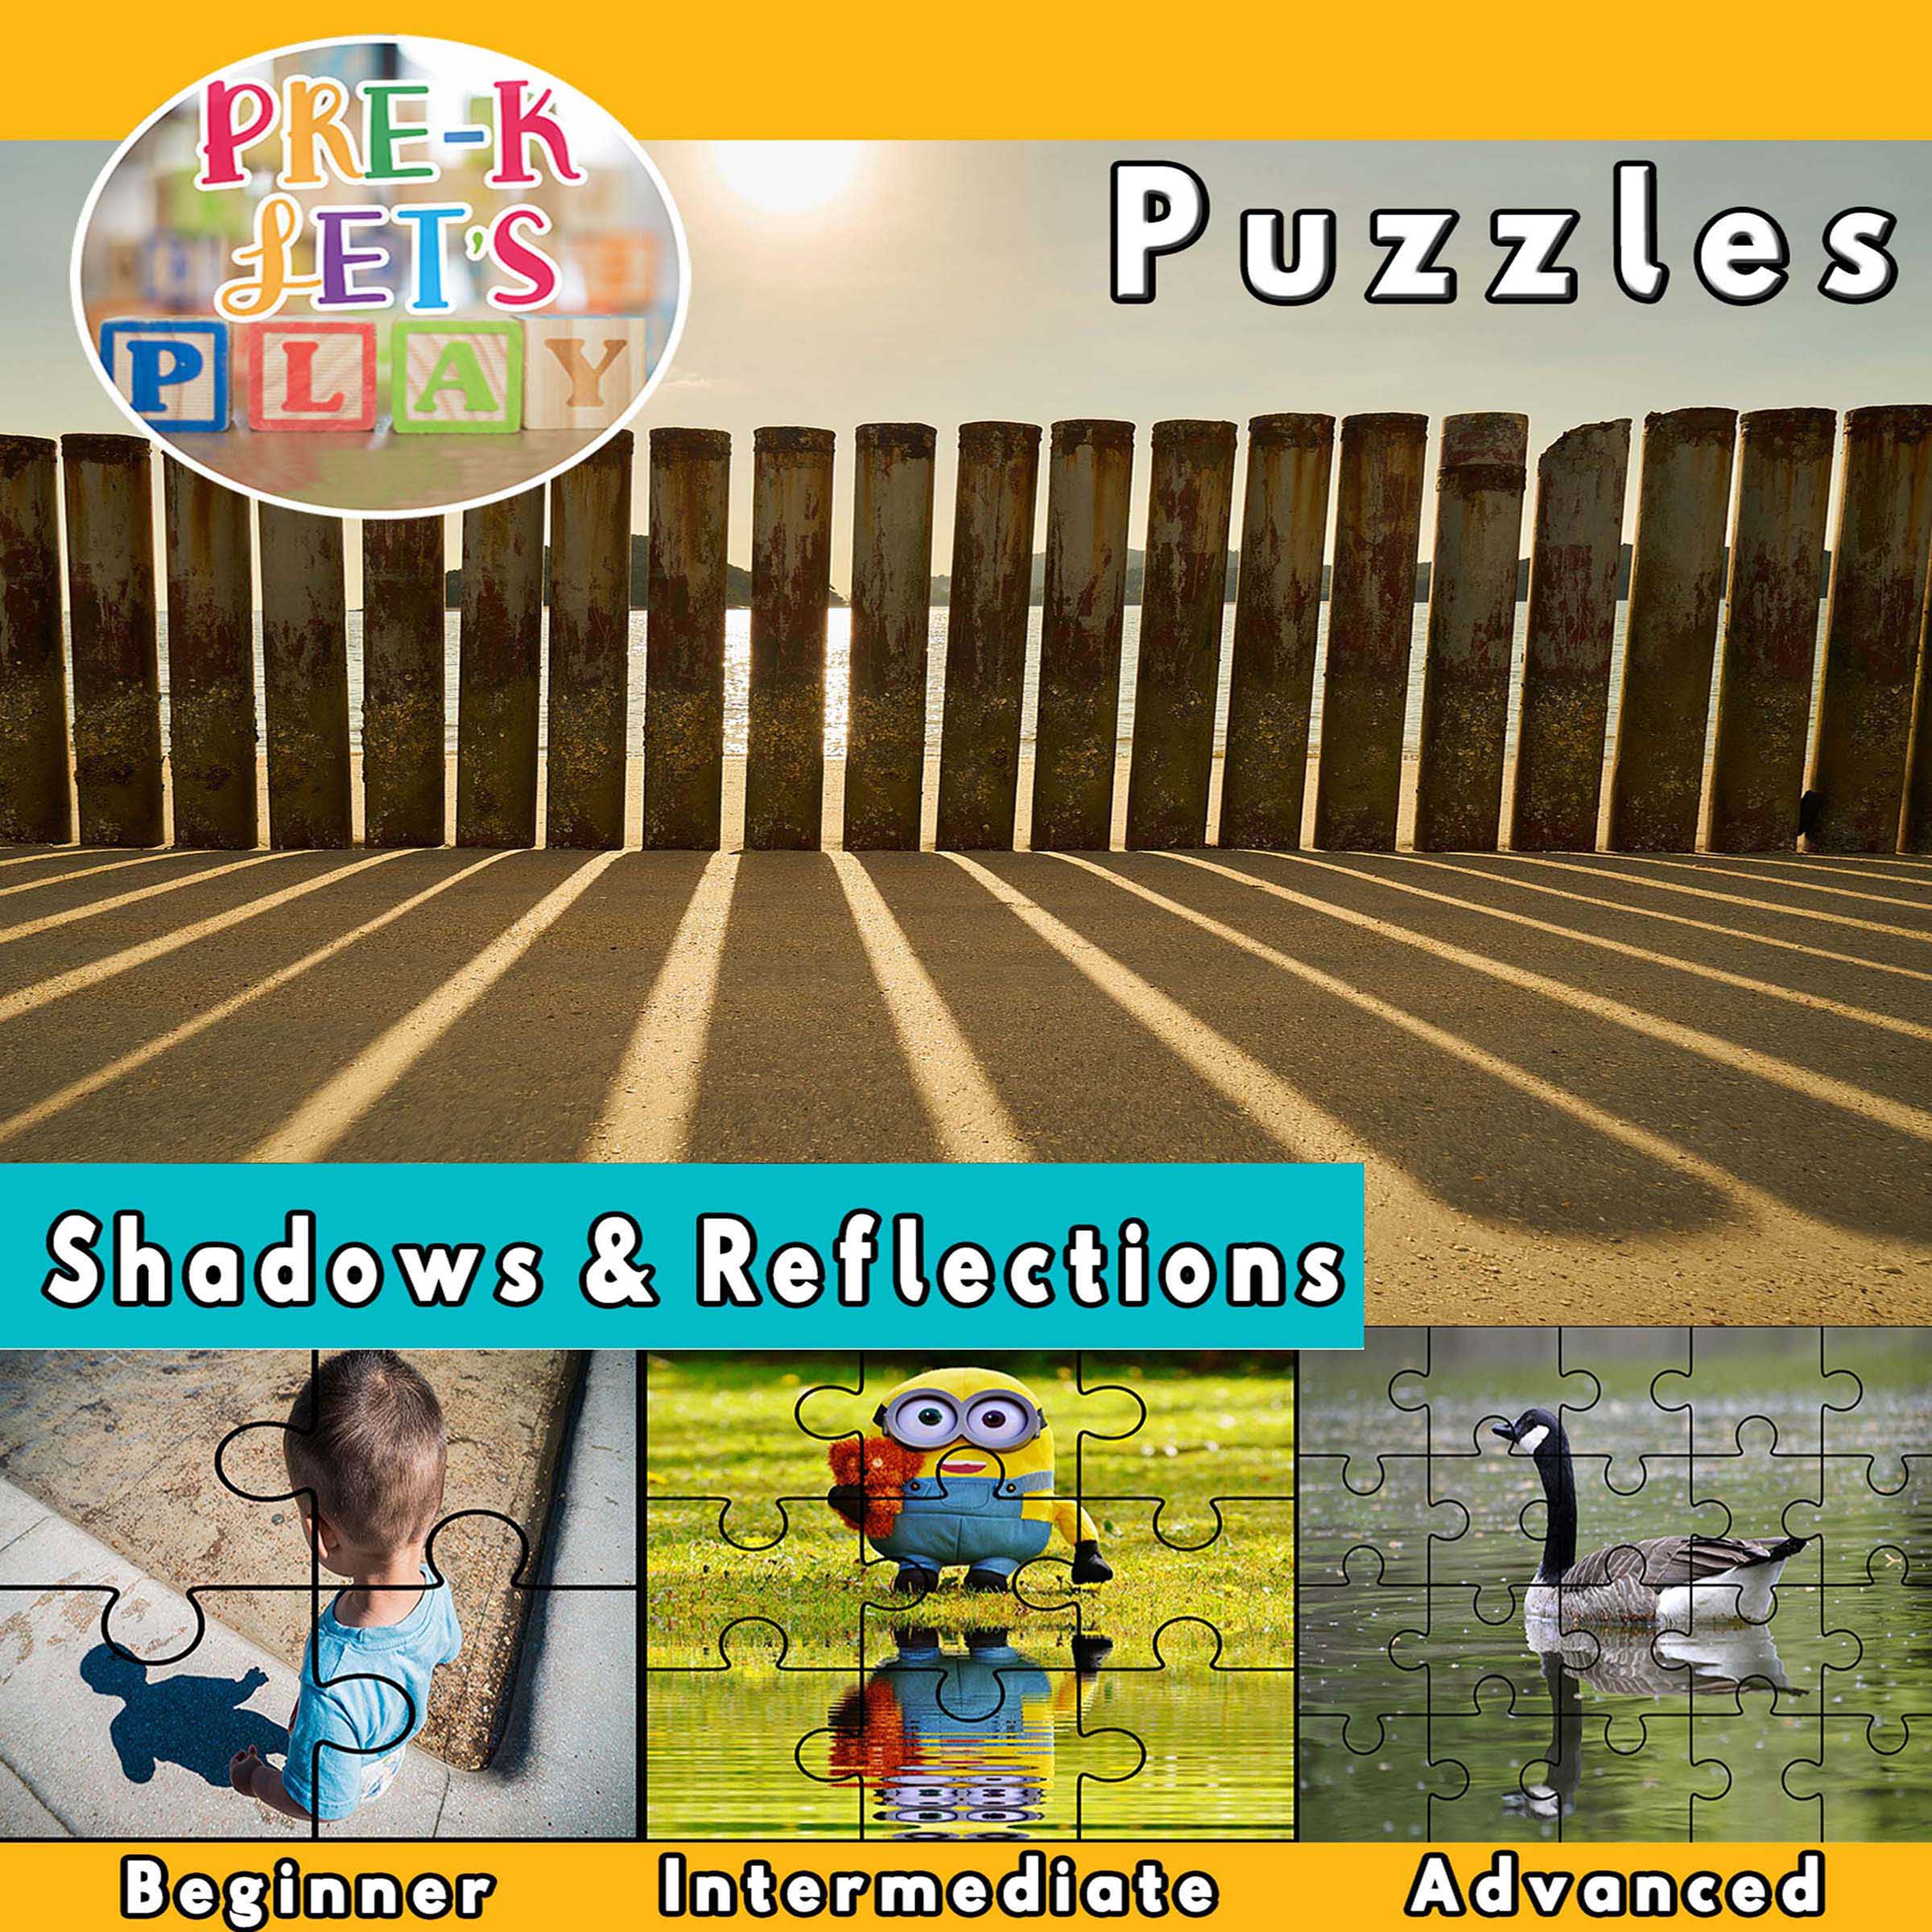 puzzle activities for preschool that focuses on the theme of shawdows and reflections.